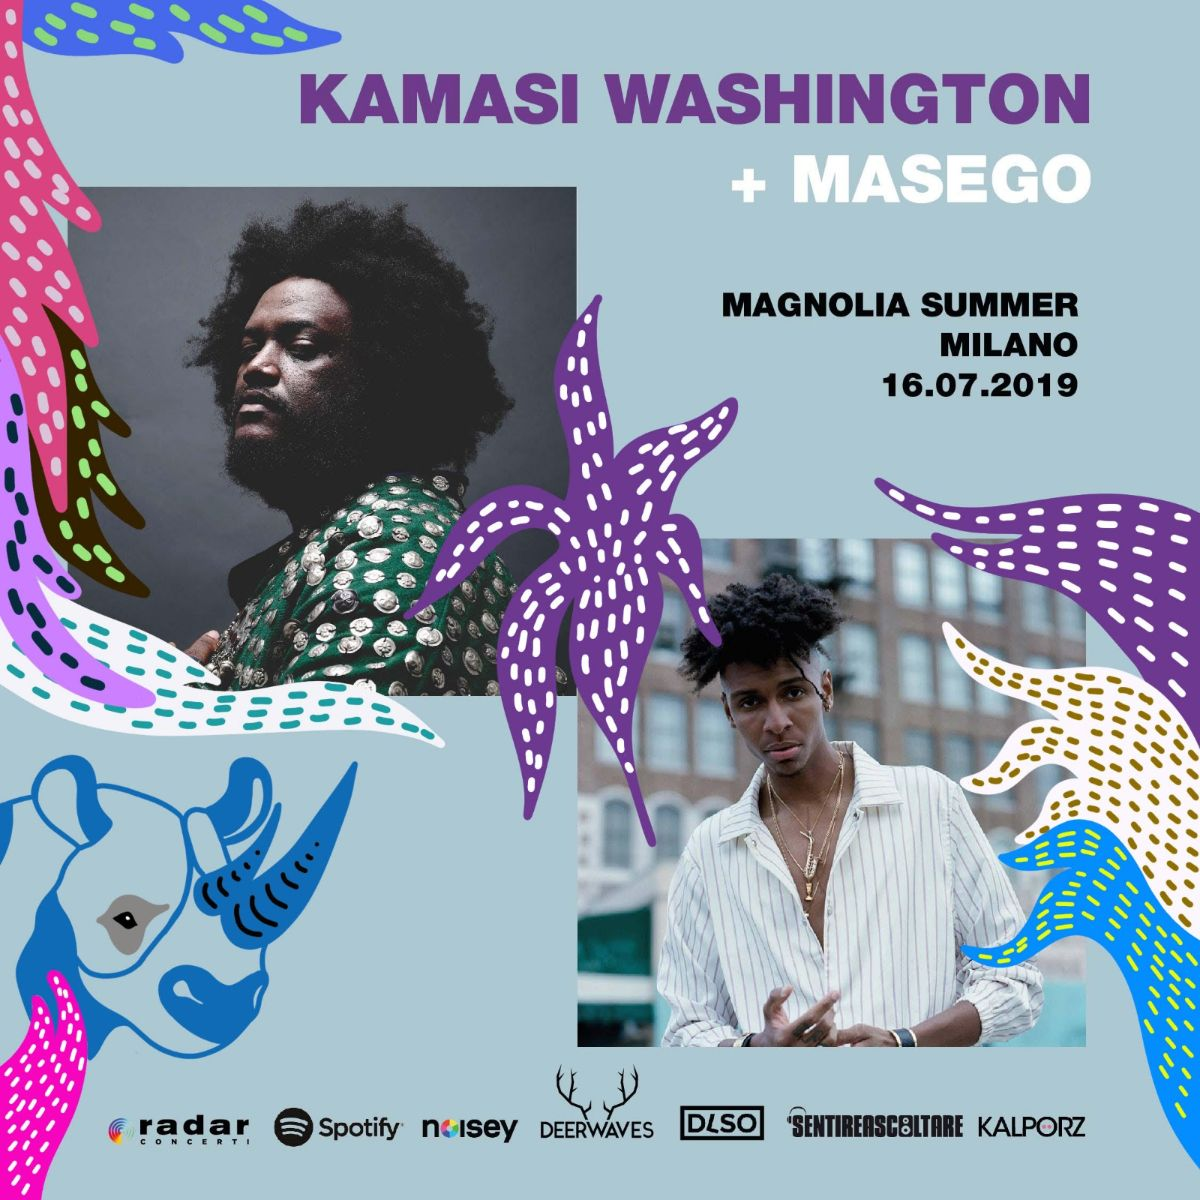 kamasi washington masego